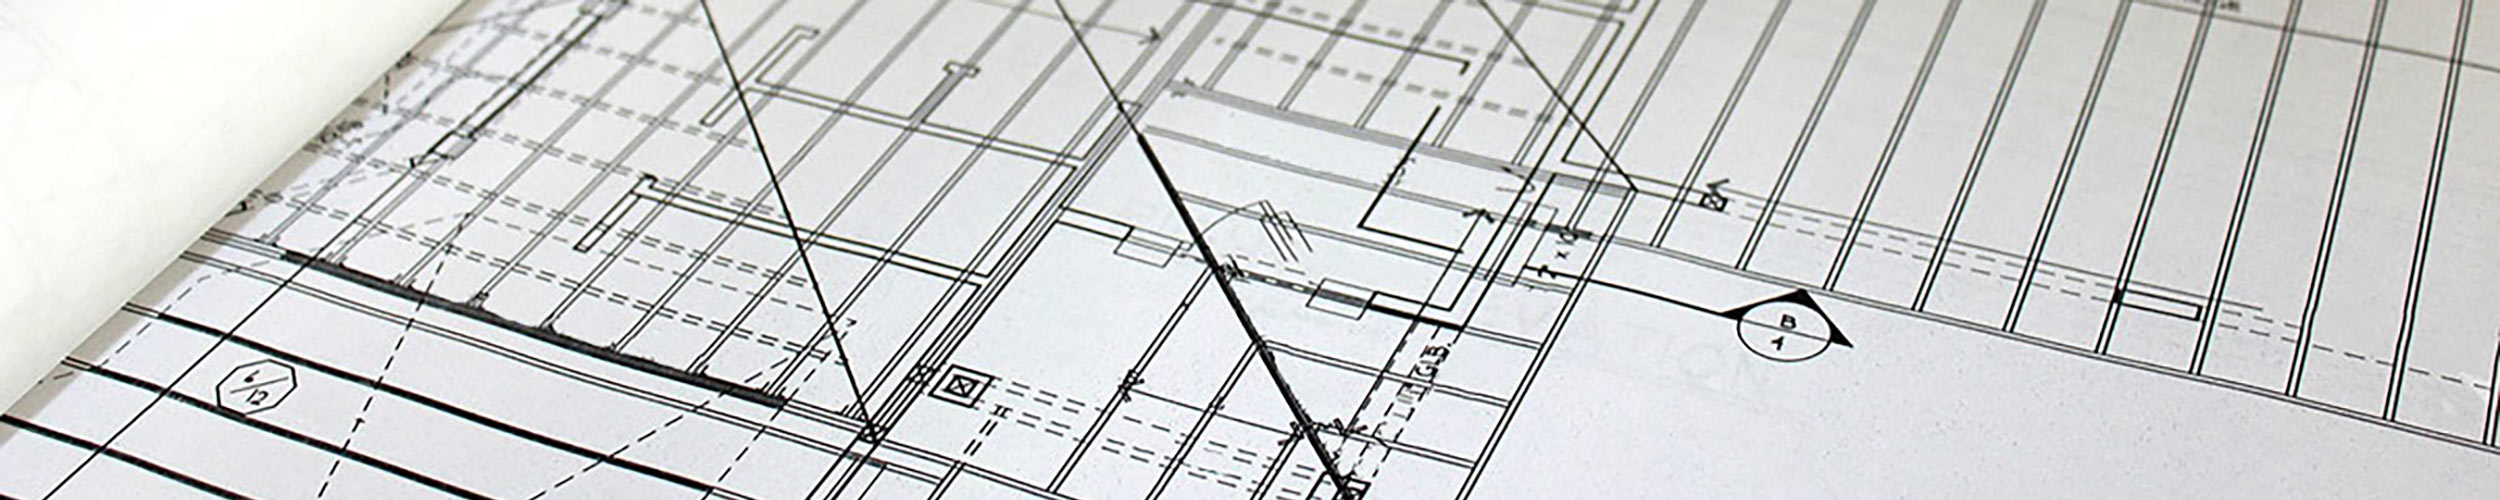 Construction drawings - Title image